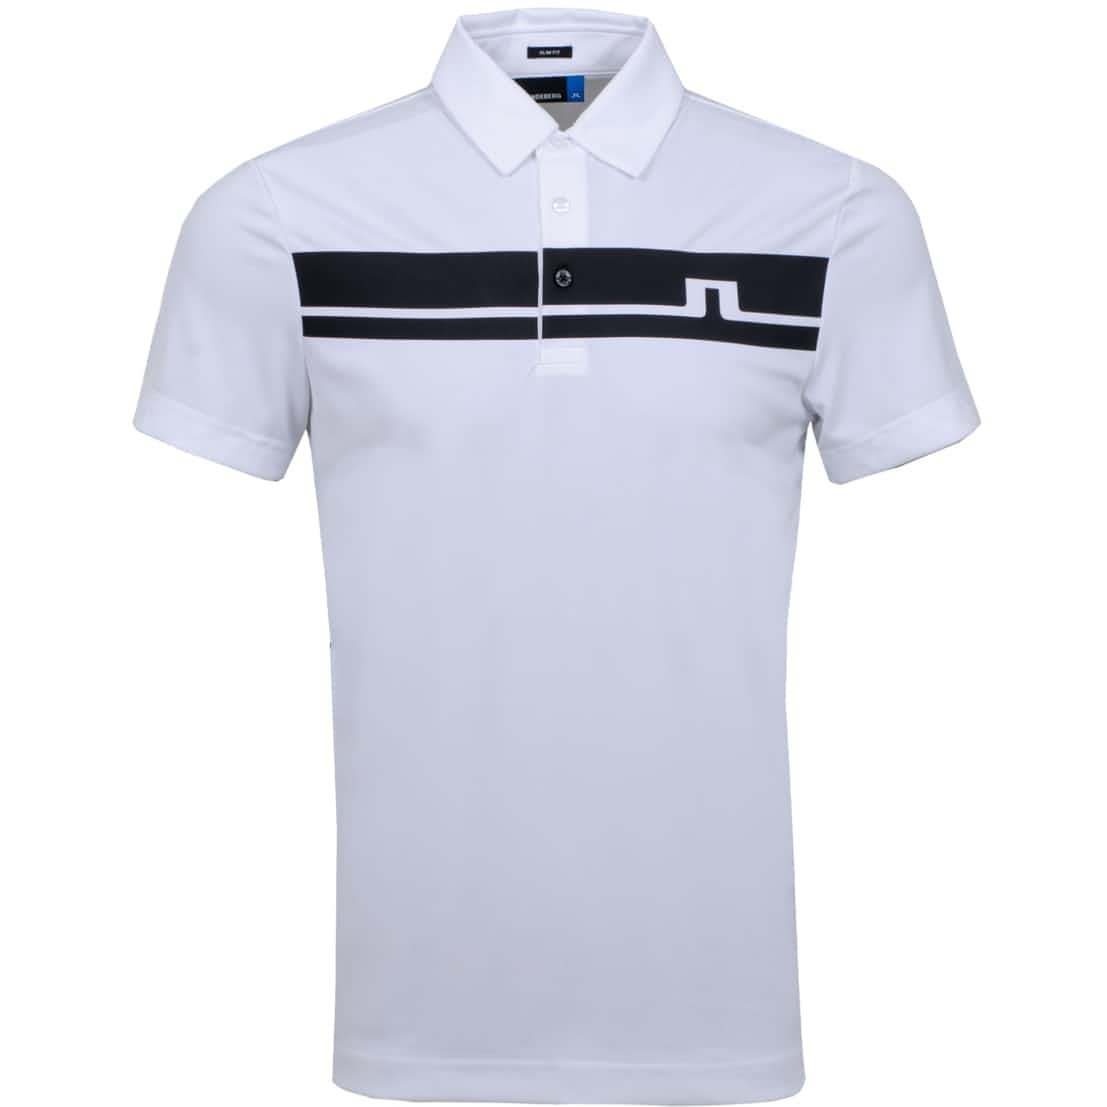 Clark Slim Fit TX Jersey White - SS20